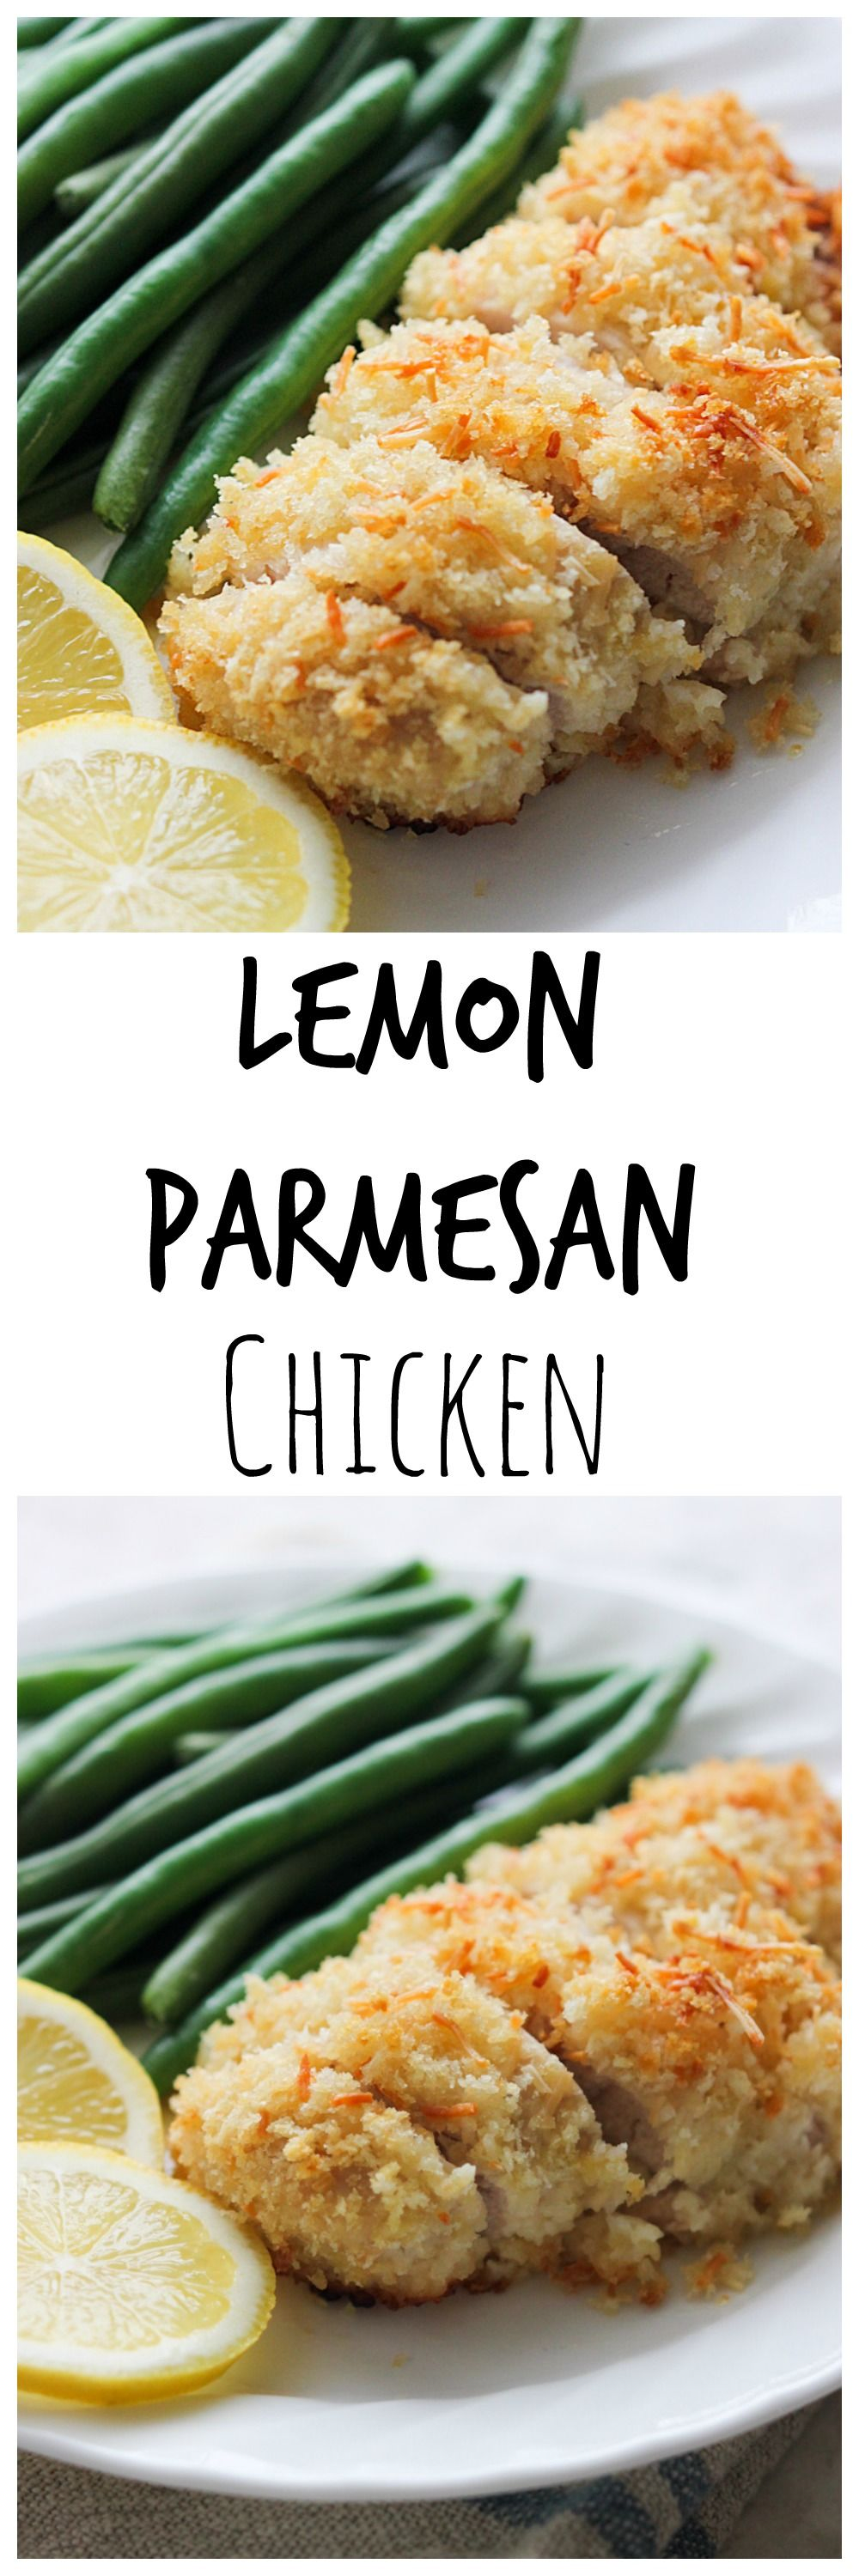 Easy chicken limone recipes